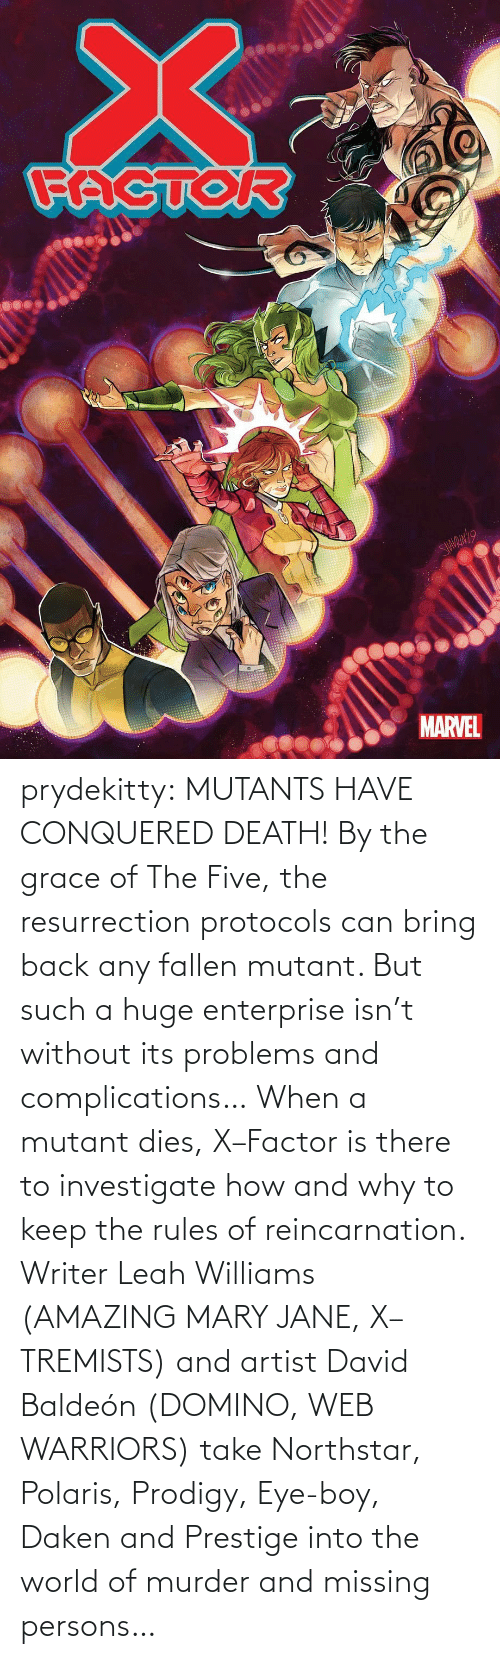 eye: prydekitty:  MUTANTS HAVE CONQUERED DEATH! By the grace of The Five, the resurrection protocols can bring back any fallen mutant. But such a huge enterprise isn't without its problems and complications… When a mutant dies, X–Factor is there to investigate how and why to keep the rules of reincarnation. Writer Leah Williams (AMAZING MARY JANE, X–TREMISTS) and artist David Baldeón (DOMINO, WEB WARRIORS) take Northstar, Polaris, Prodigy, Eye-boy, Daken and Prestige into the world of murder and missing persons…